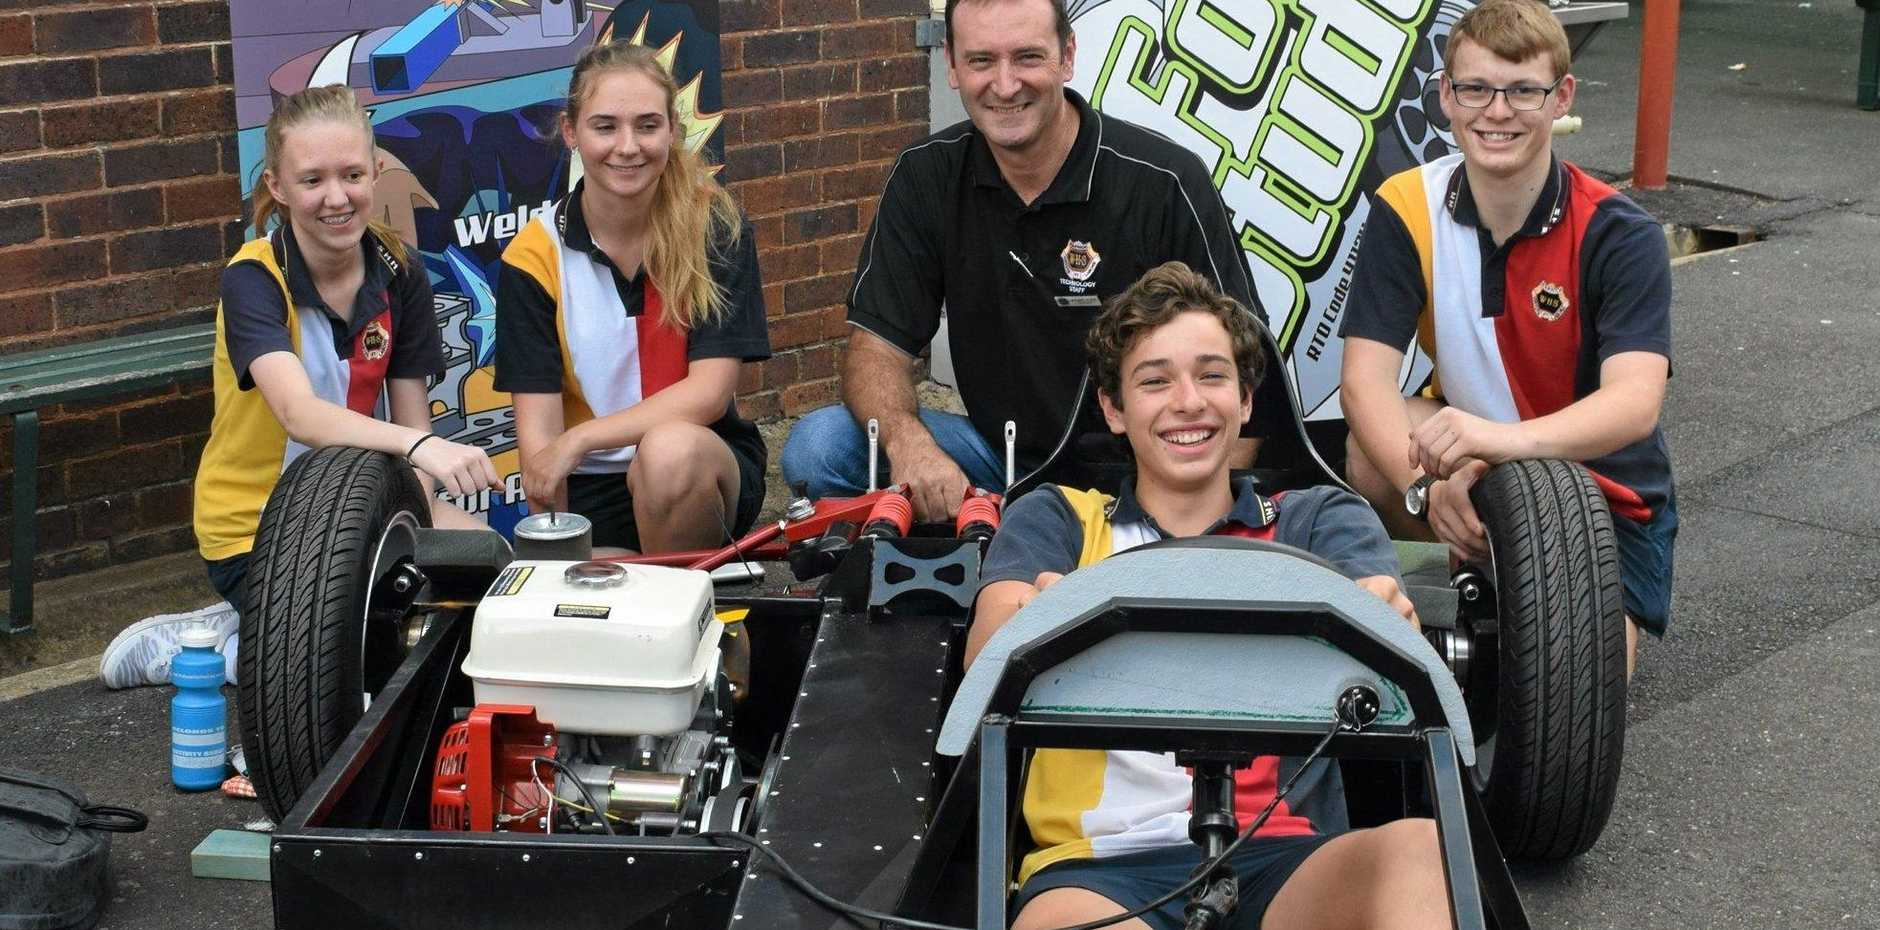 RACING TO LEARN: Warwick High students Evie Angell, Symantha Boyce, Nathan Walker, Austin Greenaway (seated) and teacher Michael Plant check out a Formula student made race car.